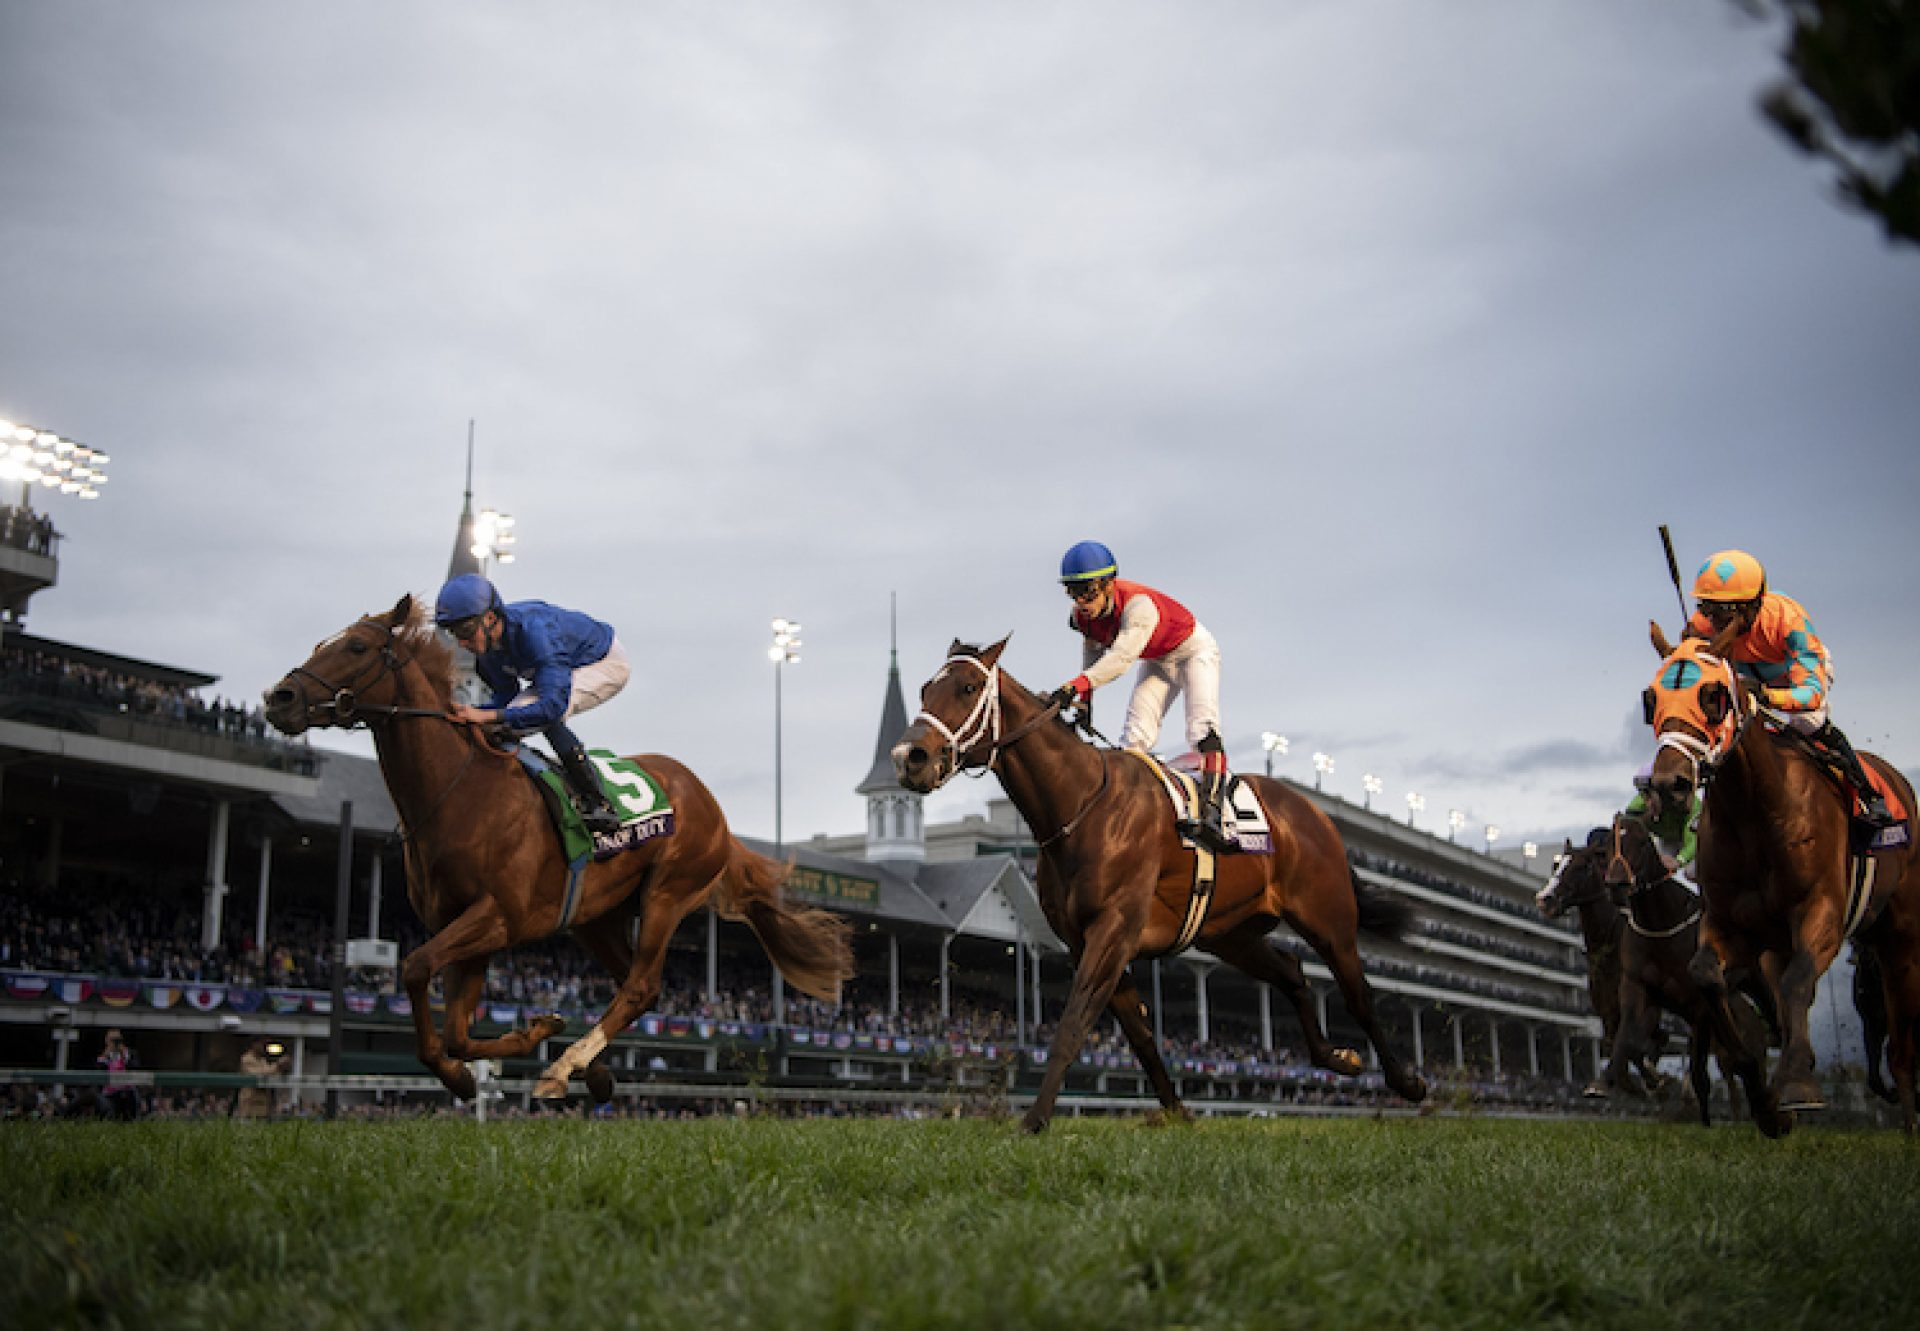 Line Of Duty (Galileo) winning the G1 Breeders Cup Turf at Churchill Downs